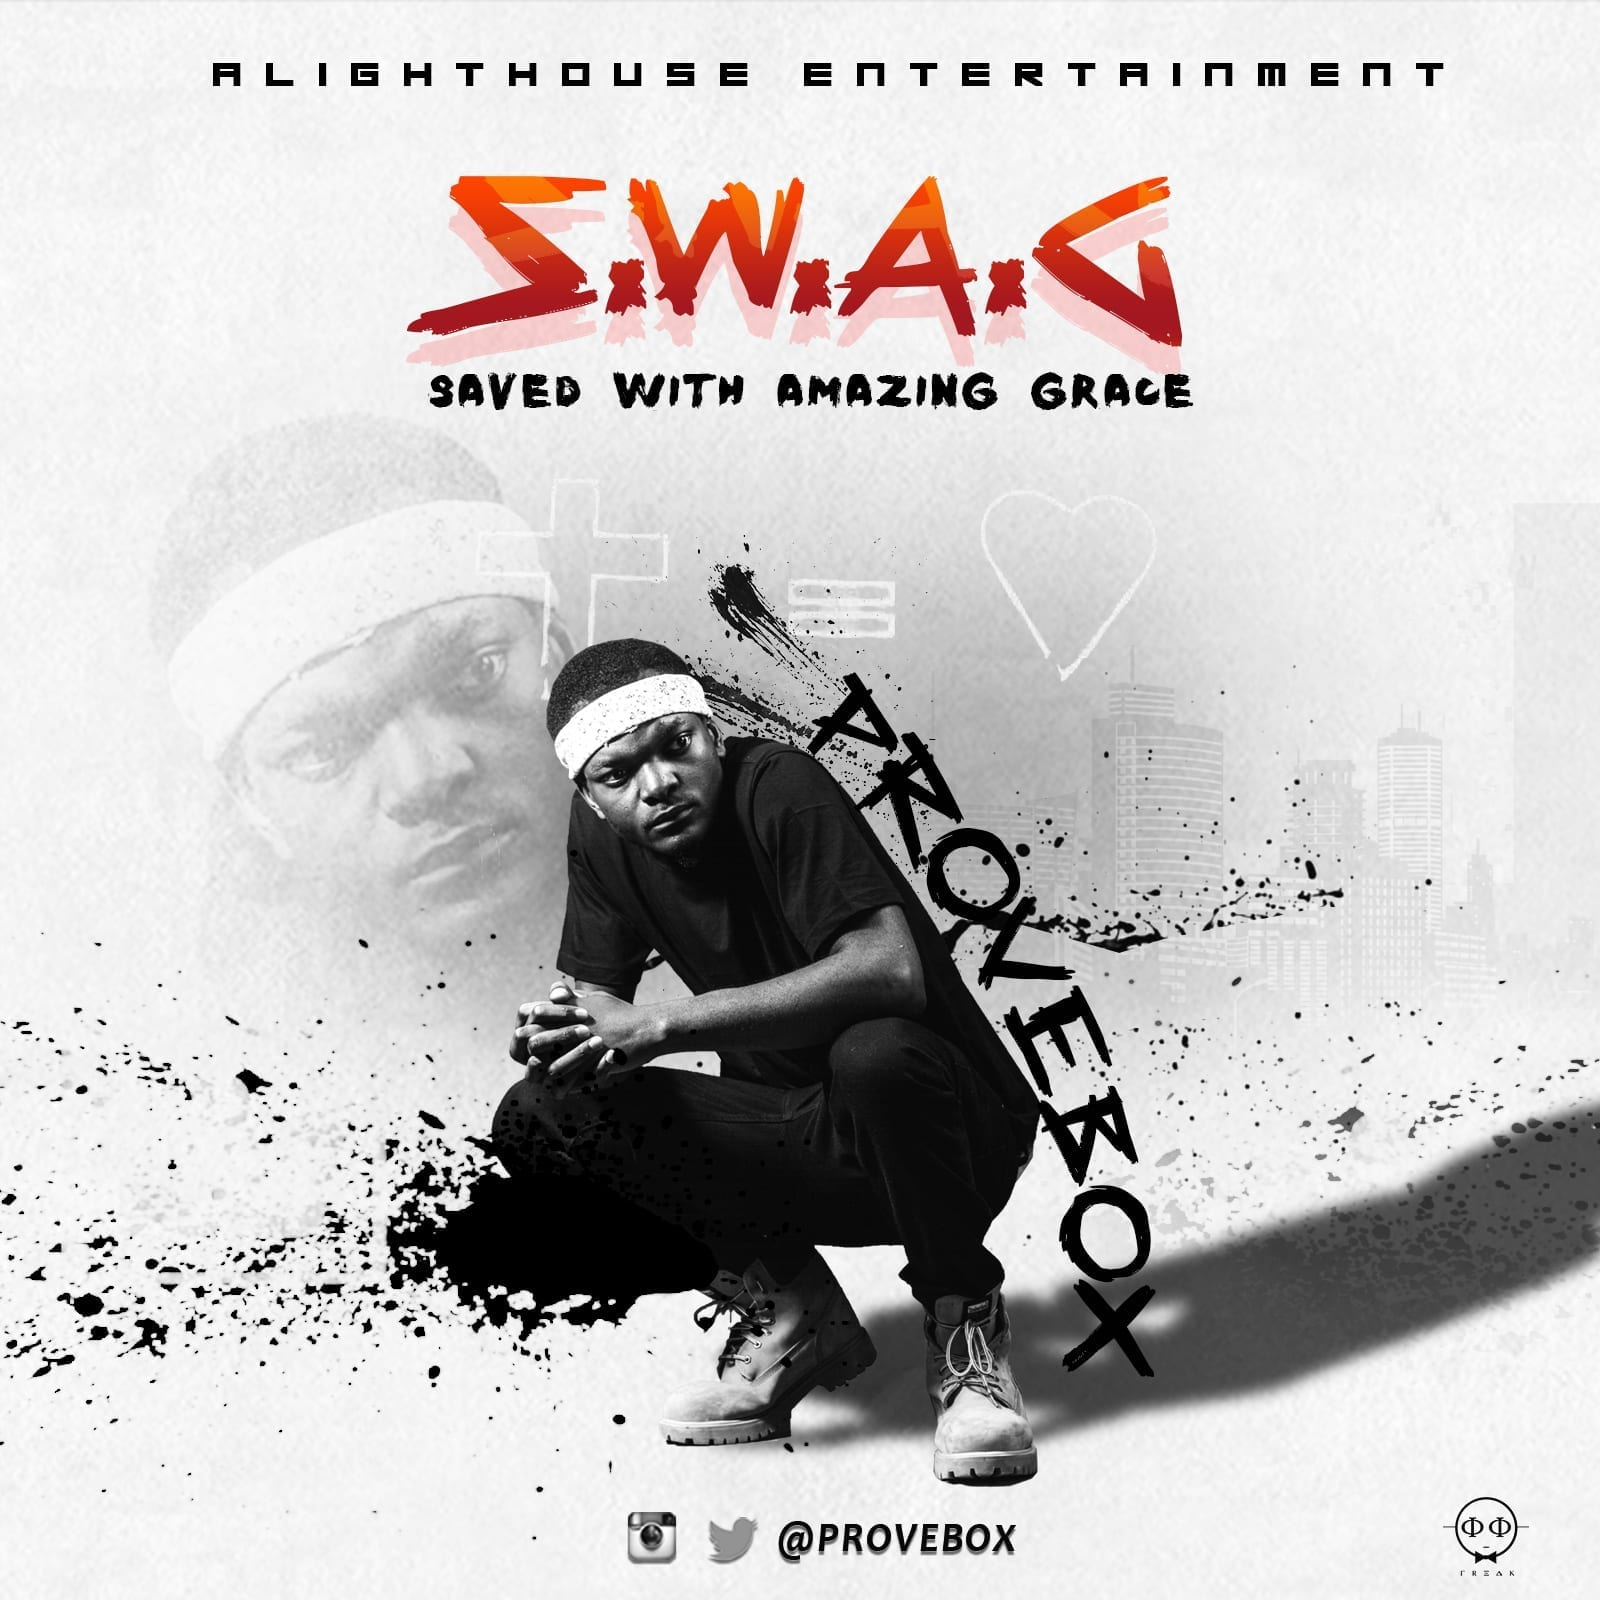 Prove Box (Oyi Ku Jesus) Drop's S.W.A.G. Download Now!